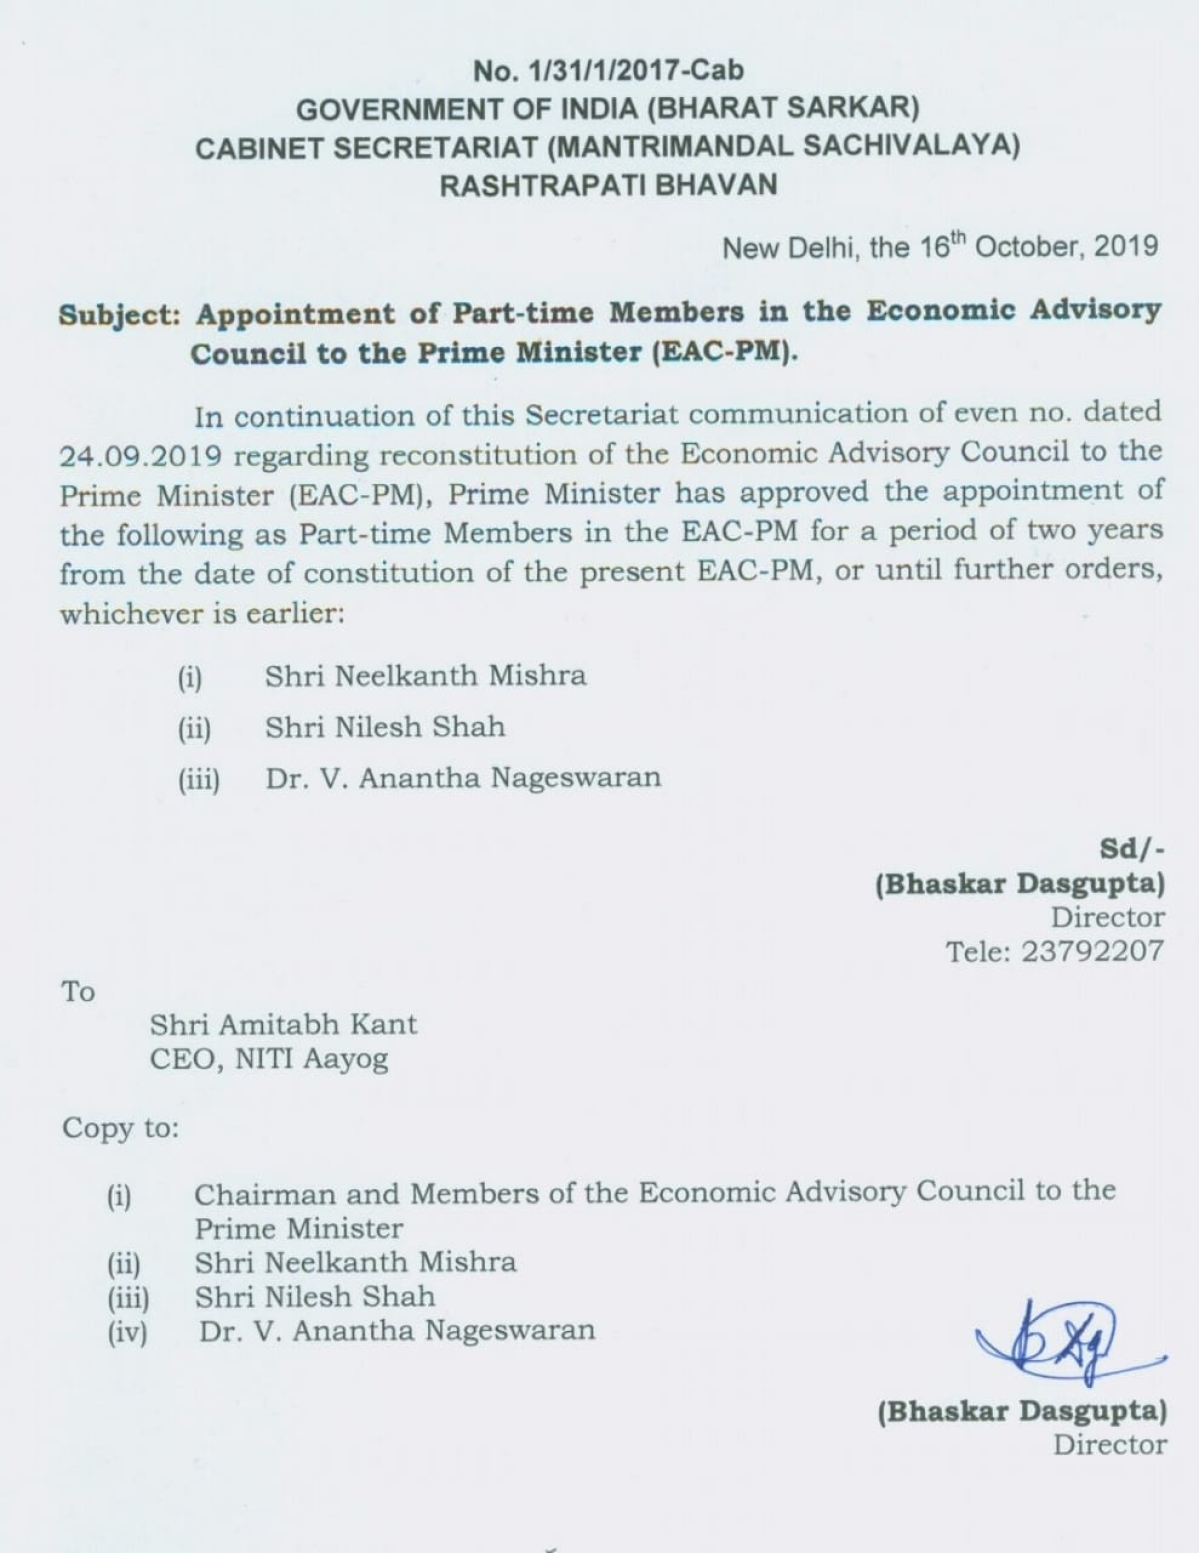 Neelkanth Mishra, Nilesh Shah, Dr Anantha Nageswaran appointed as part-time members of PM's Economic Advisory Council